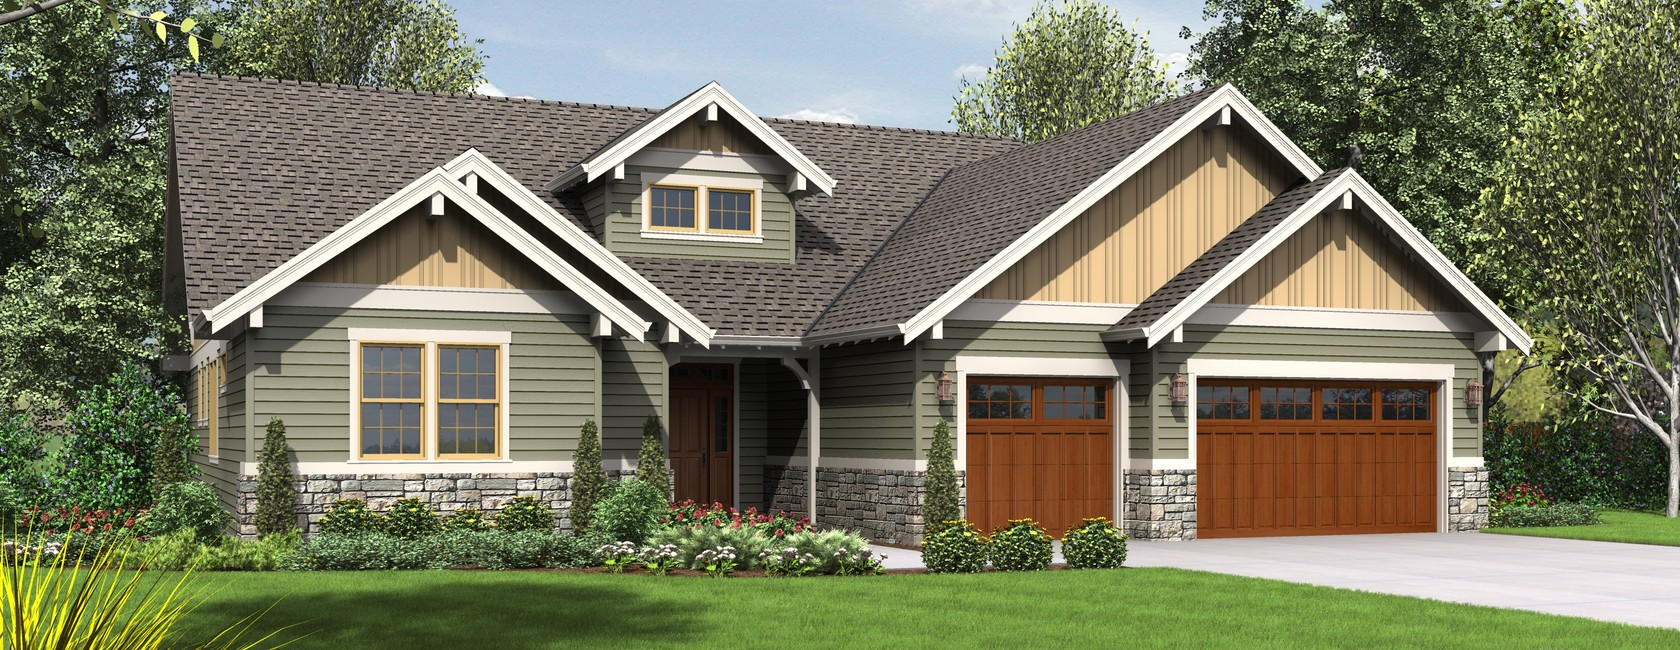 Sns 175 What To Do With Old Windows likewise Modular Floor Plans Ranch With Vaulted Ceiling moreover Timber Frame Ranch Home Designs furthermore Crenshaw Plan in addition Milano Texas Residence. on custom one story ranch home